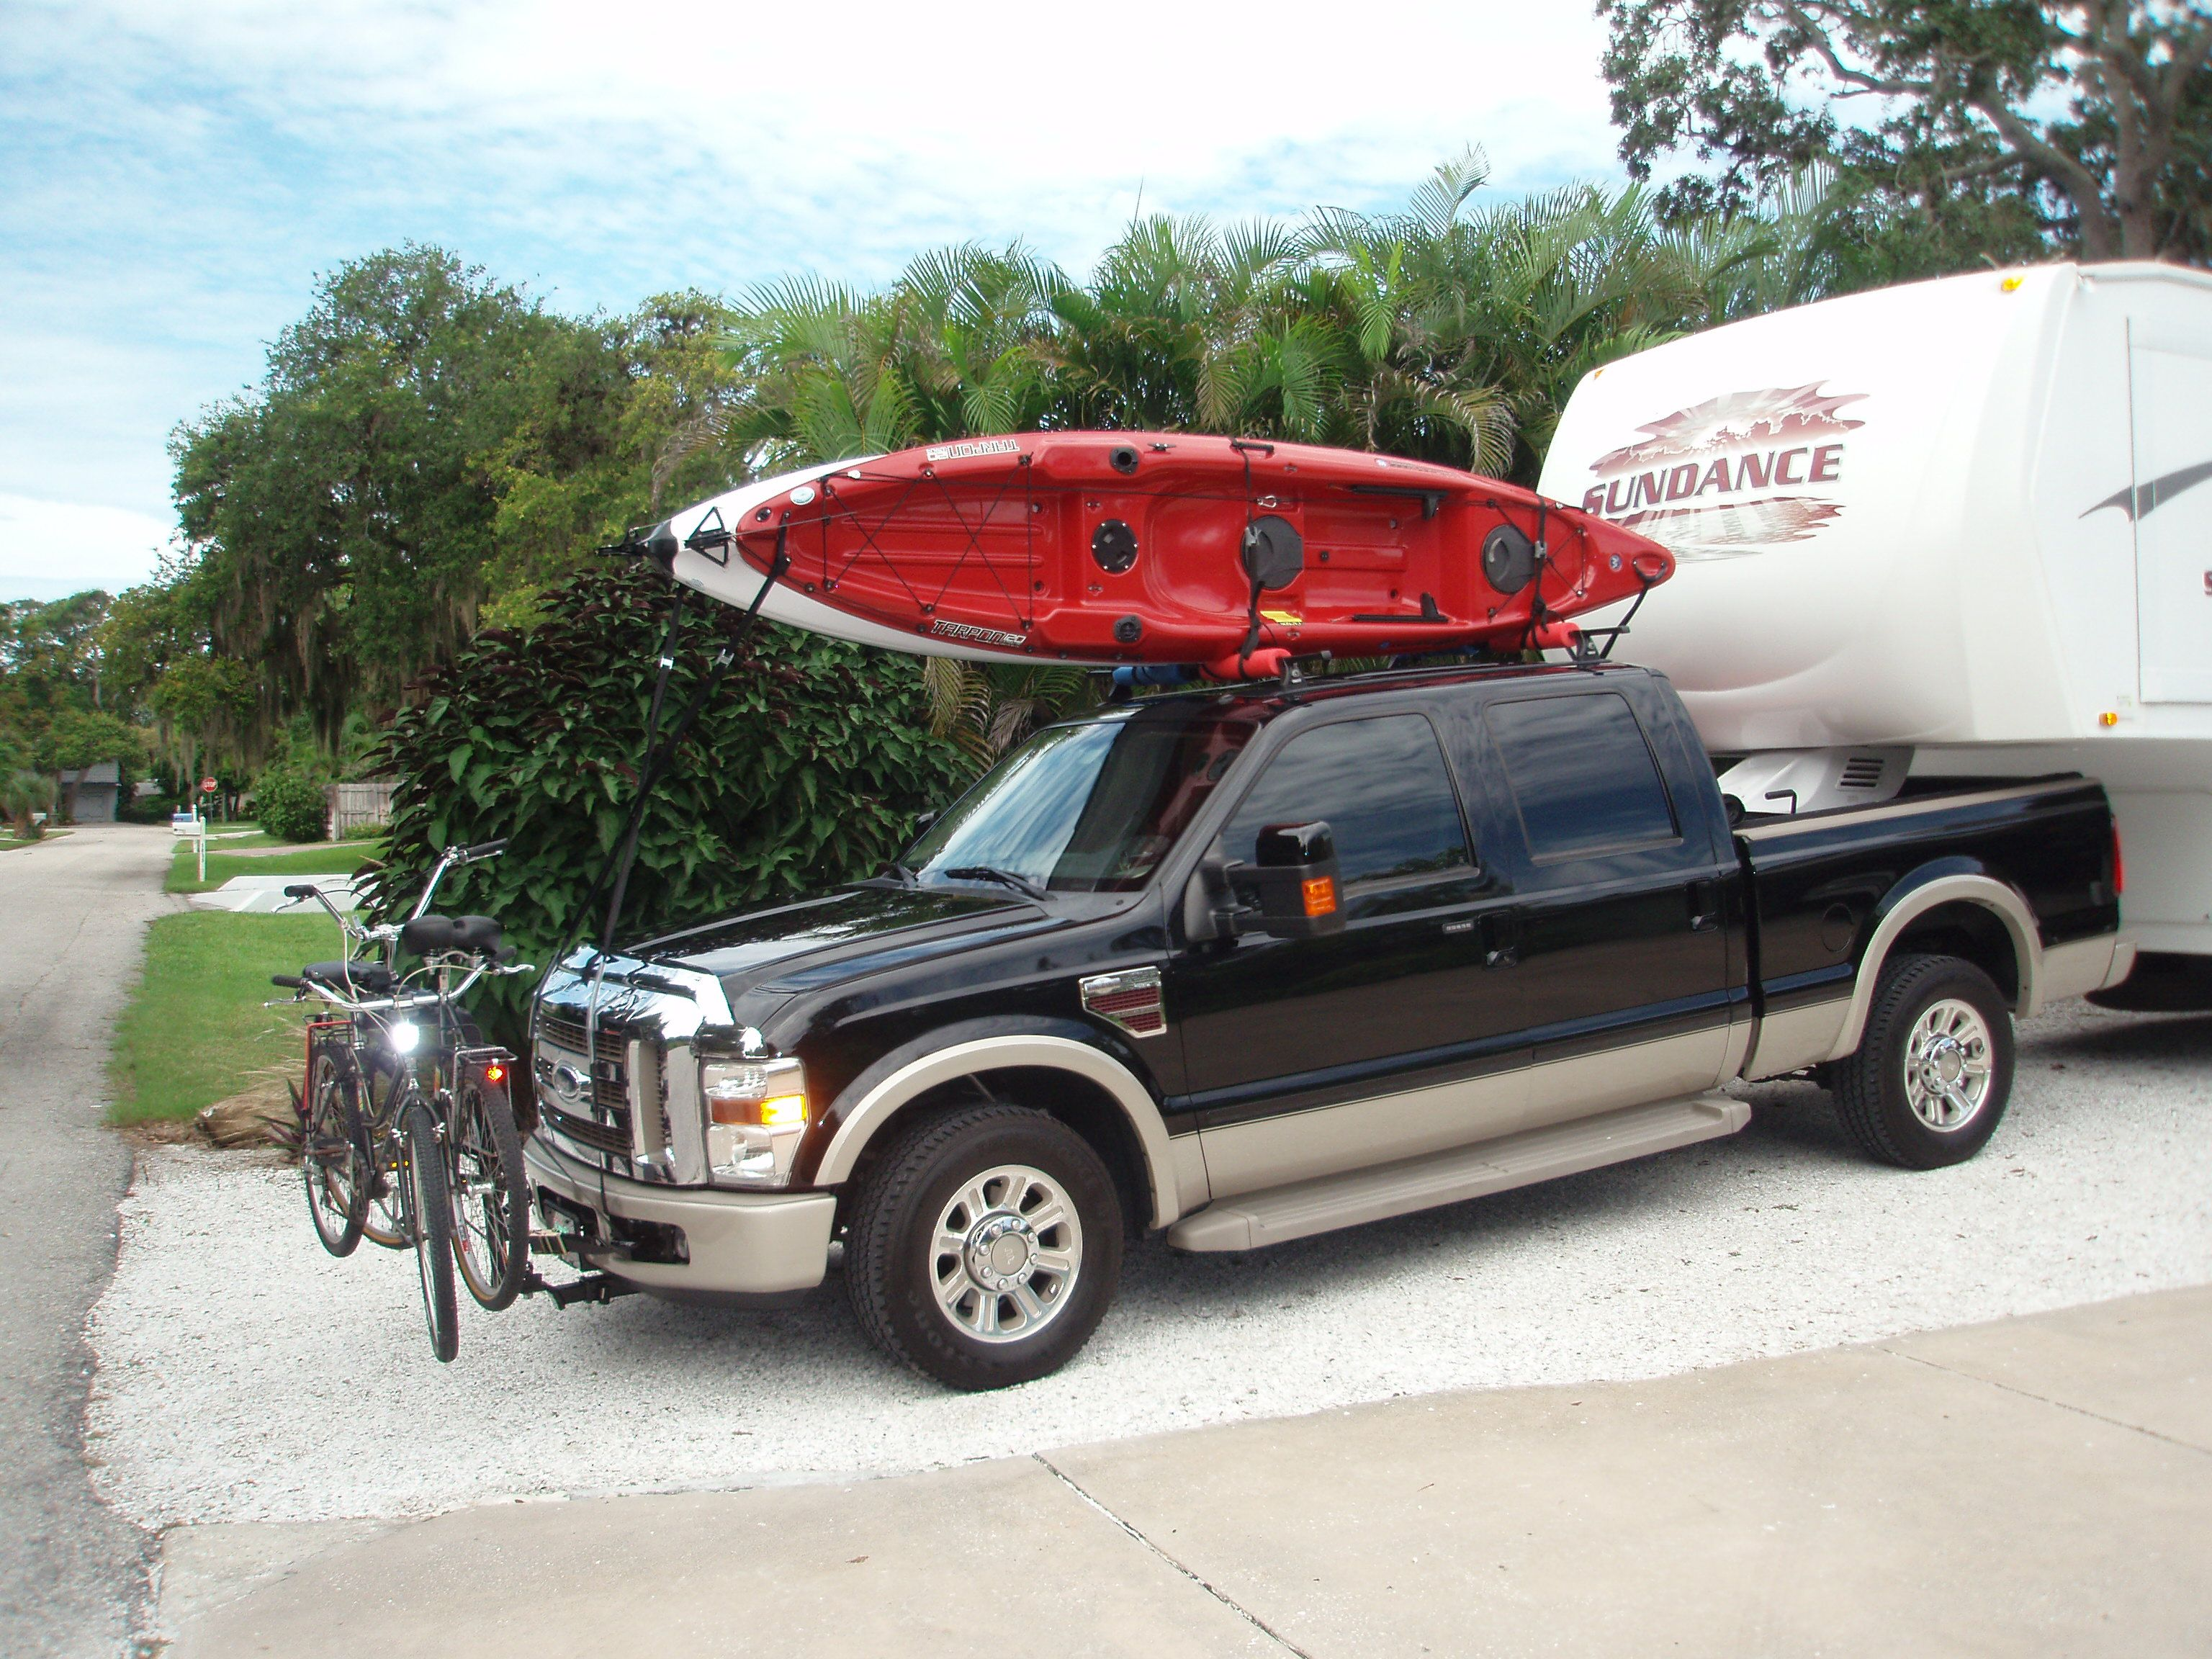 machine is dodge naked racks make kayak summer transport rhino rack vortex ultimate pin camping gear trucks using your aero ram hiking roof pickup for rs this roofs adventure crossbars the and